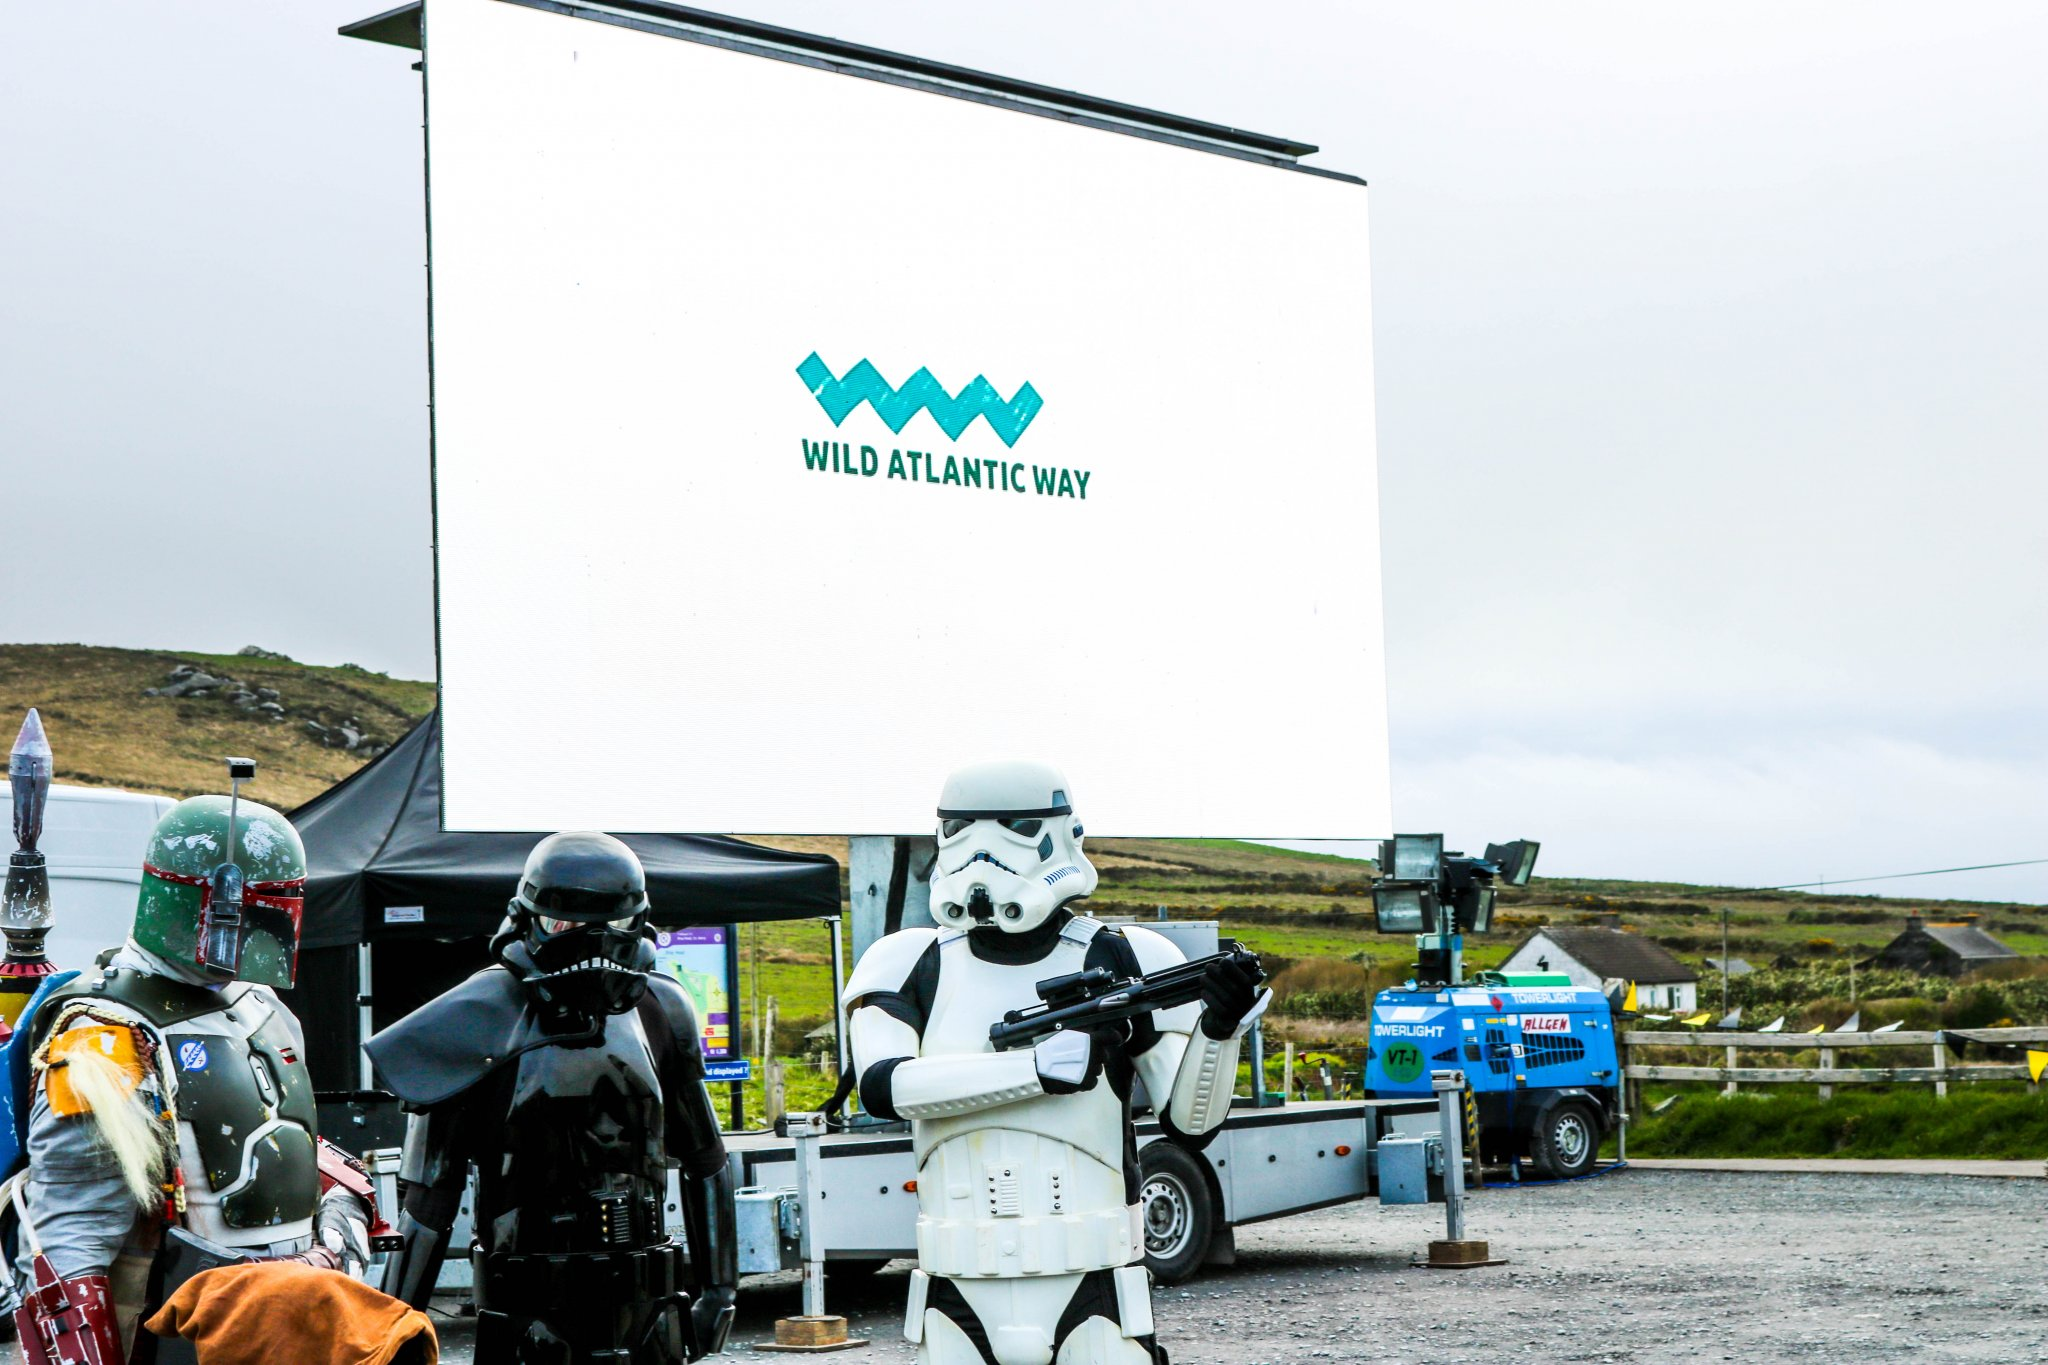 Star Wars Film Locations: Finding the force in Portmagee